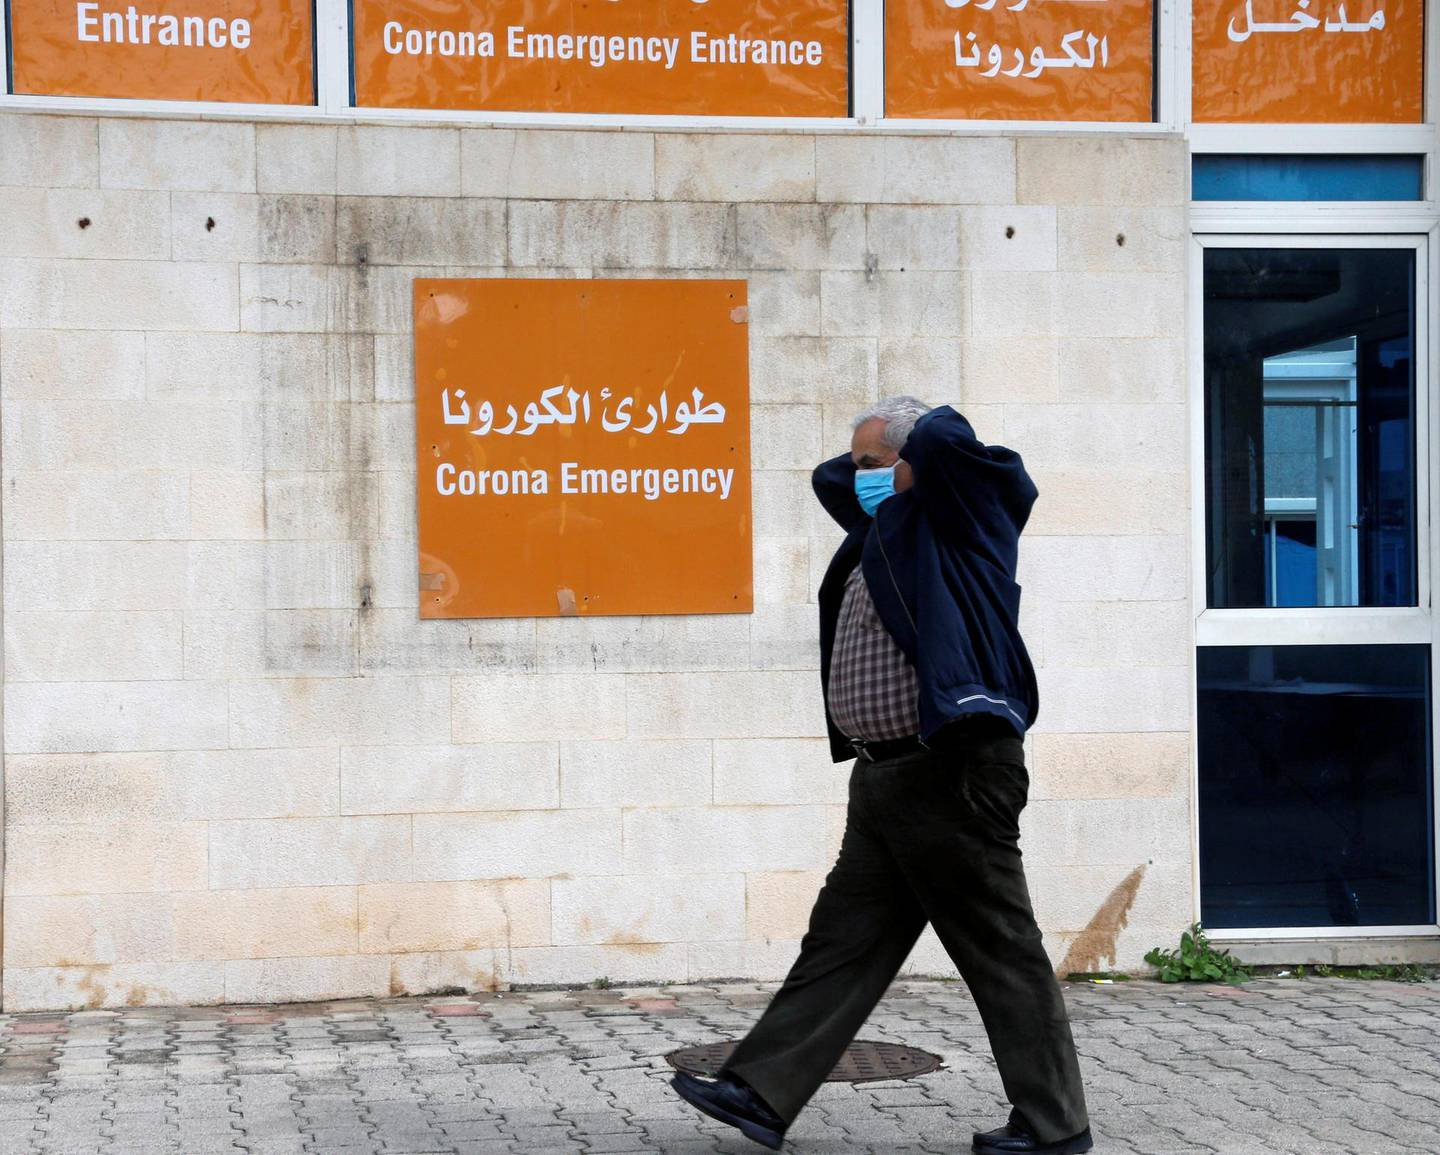 A man wears a face mask as he walks near the entrance of emergency at Rafik Hariri hospital, as Lebanon recorded its first death from coronavirus, in Beirut, Lebanon March 10, 2020. REUTERS/Mohamed Azakir